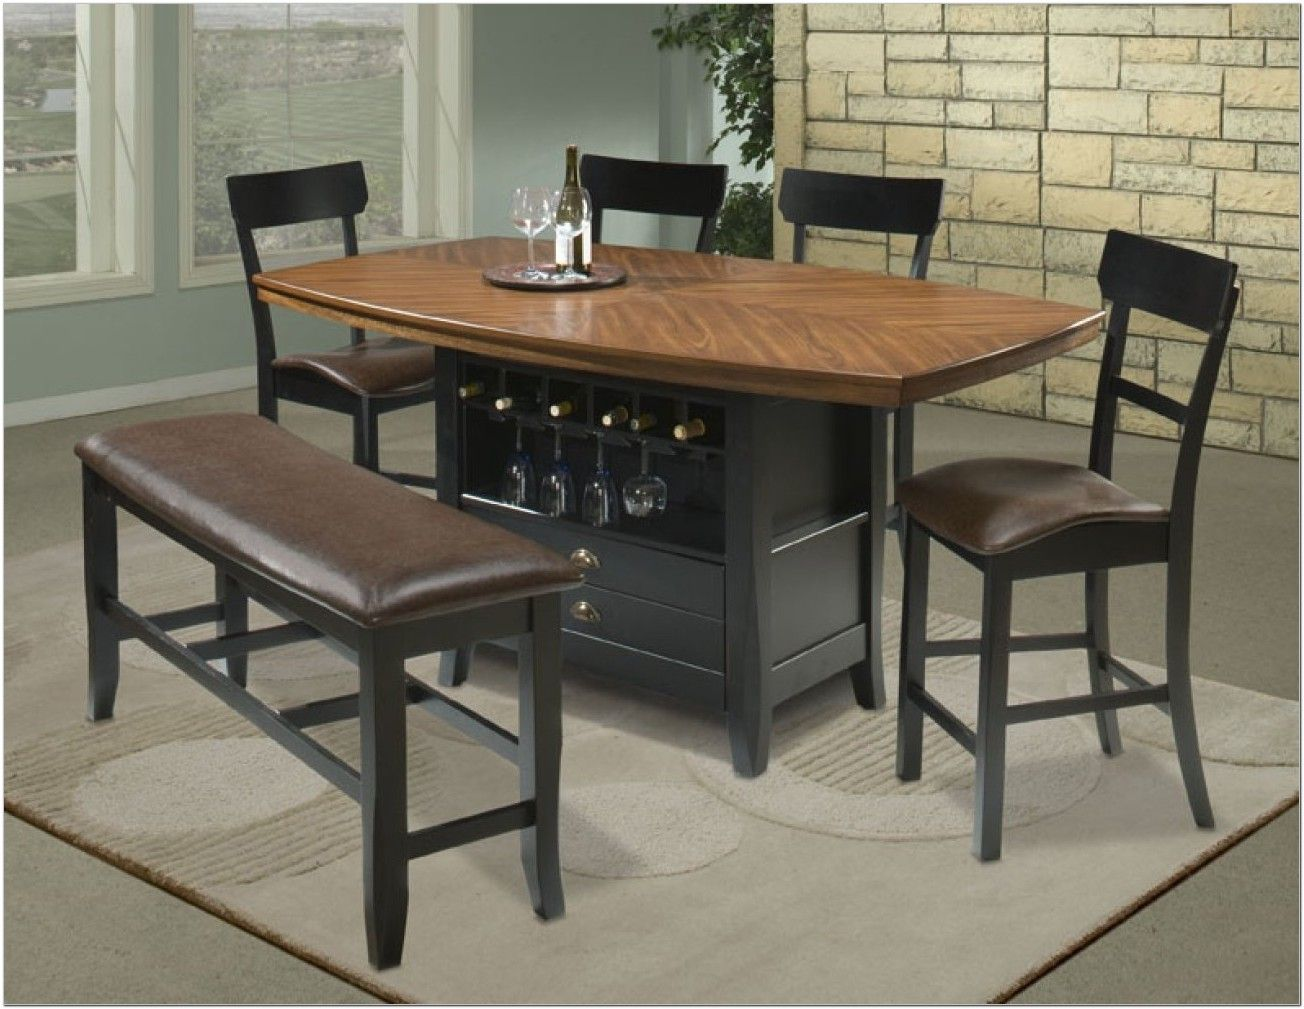 42 High Dining Table Sets Bar Table High Top Tables Kitchen Table Settings